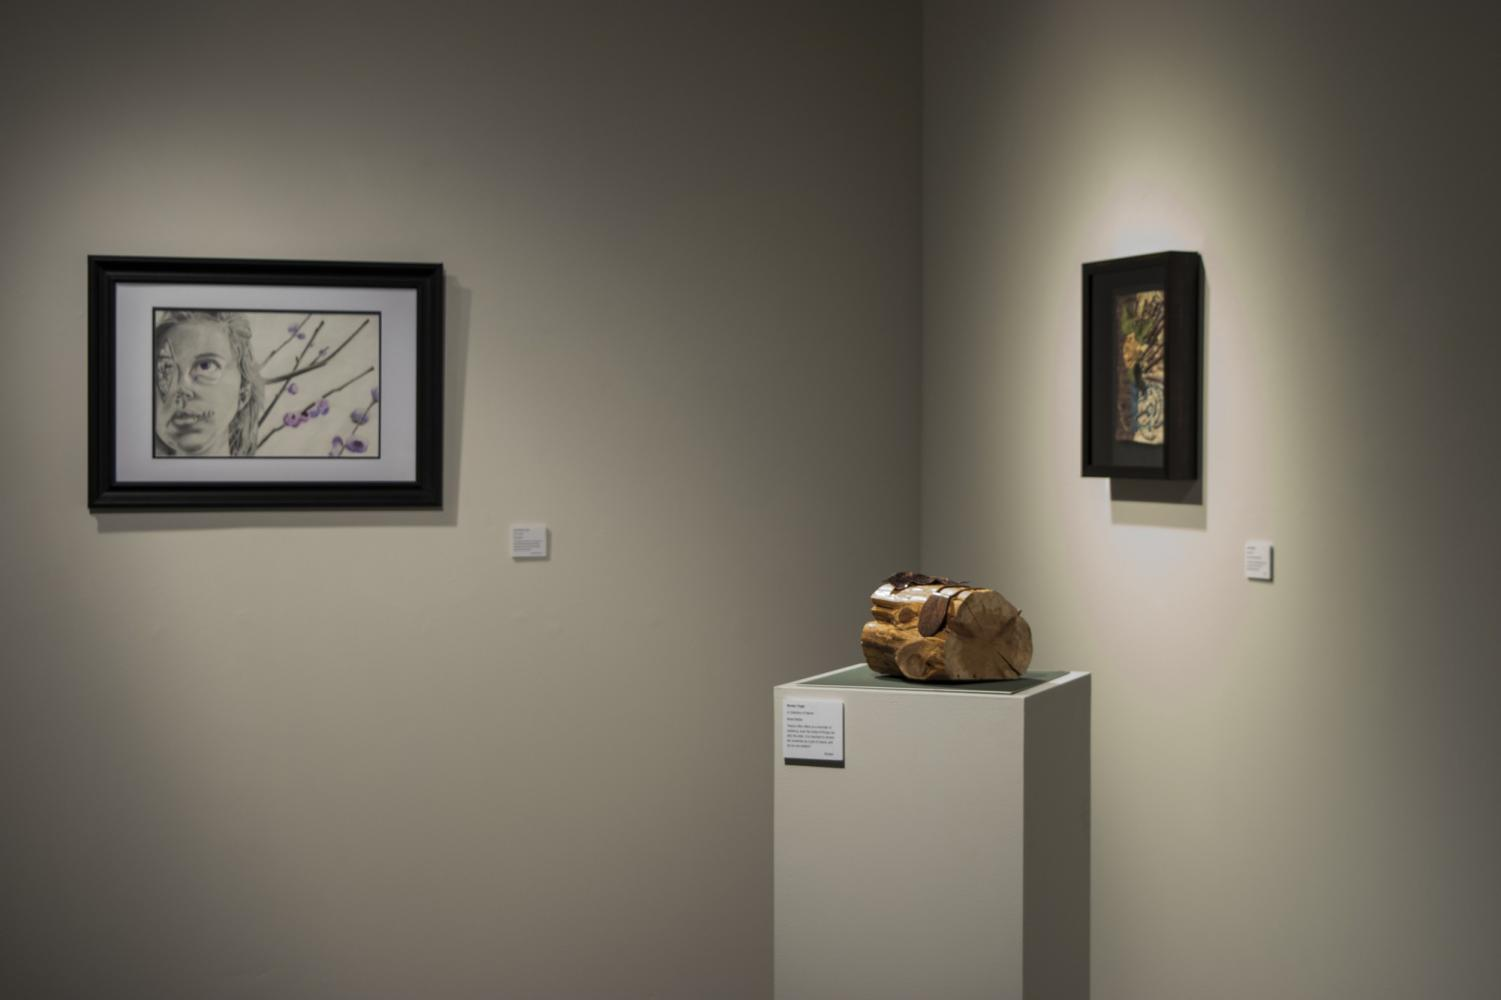 Art Therapy students display their work in the Suraci Gallery to demonstrate how art can help those suffering. Photo credit: Bethany Wade